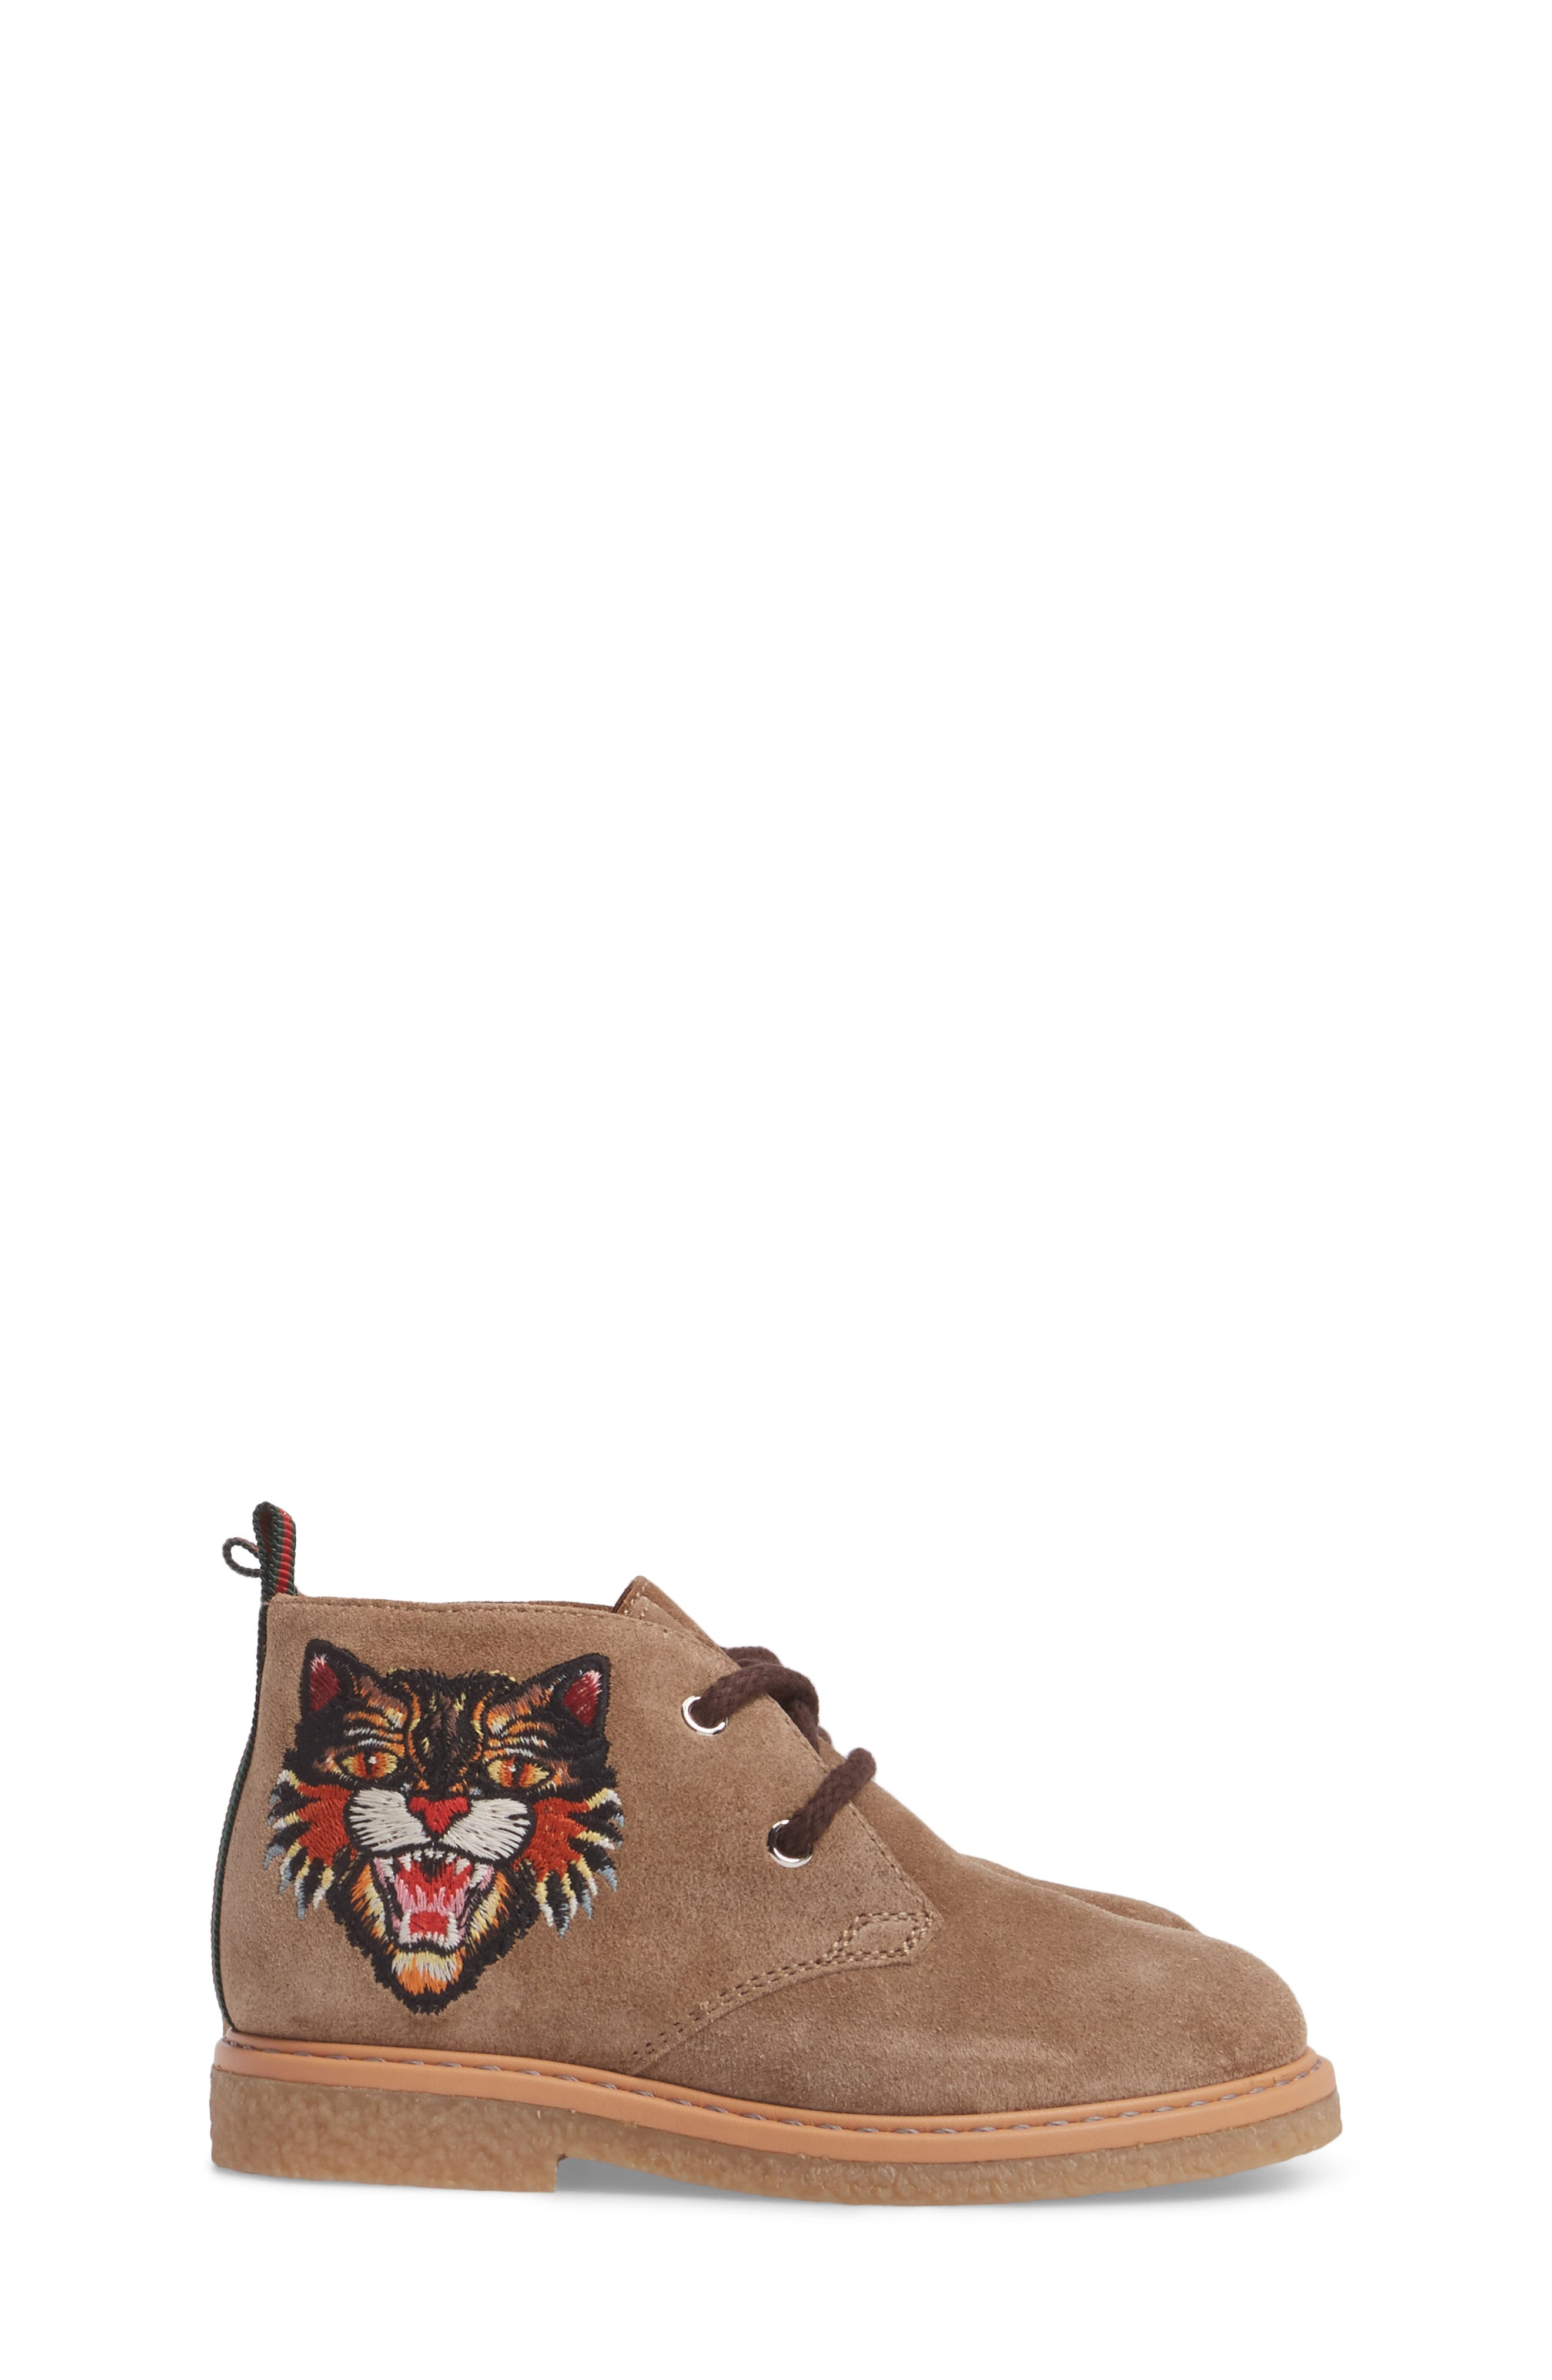 Lucas Embroidered Bootie,                             Alternate thumbnail 3, color,                             250